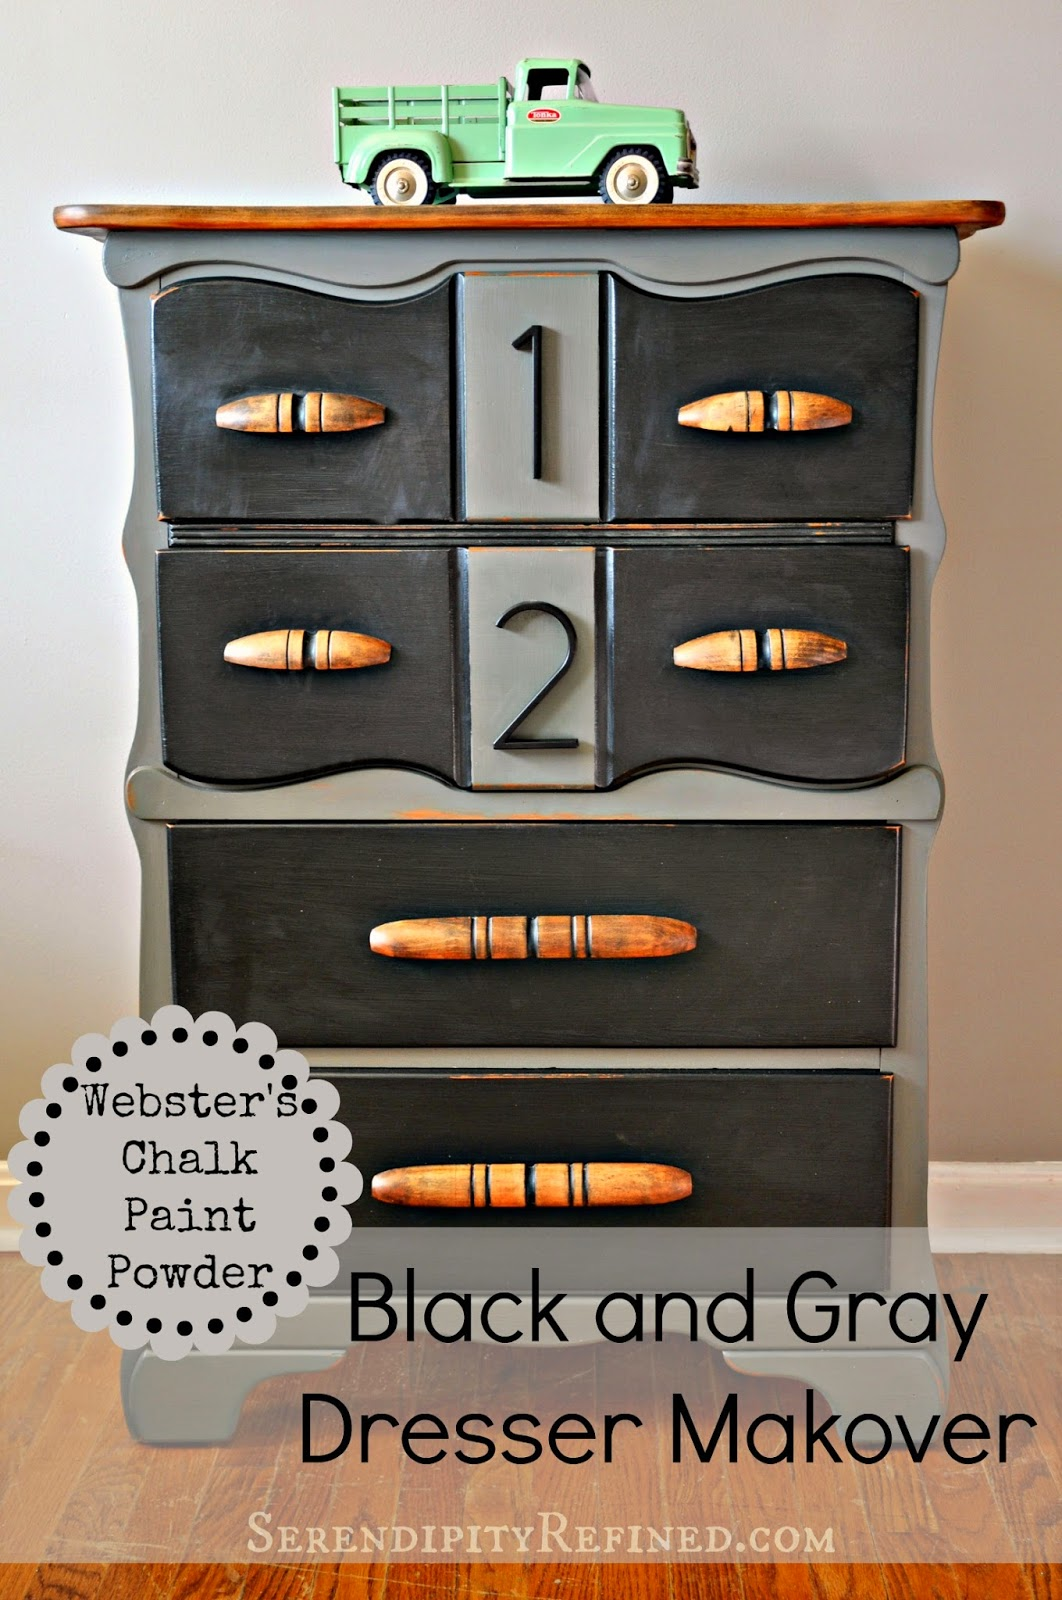 Websteru0027s Painted Furniture Chalk Paint Powder DIY Tutorial Black And Gray  Painted Dresser By SerendipityRefined.